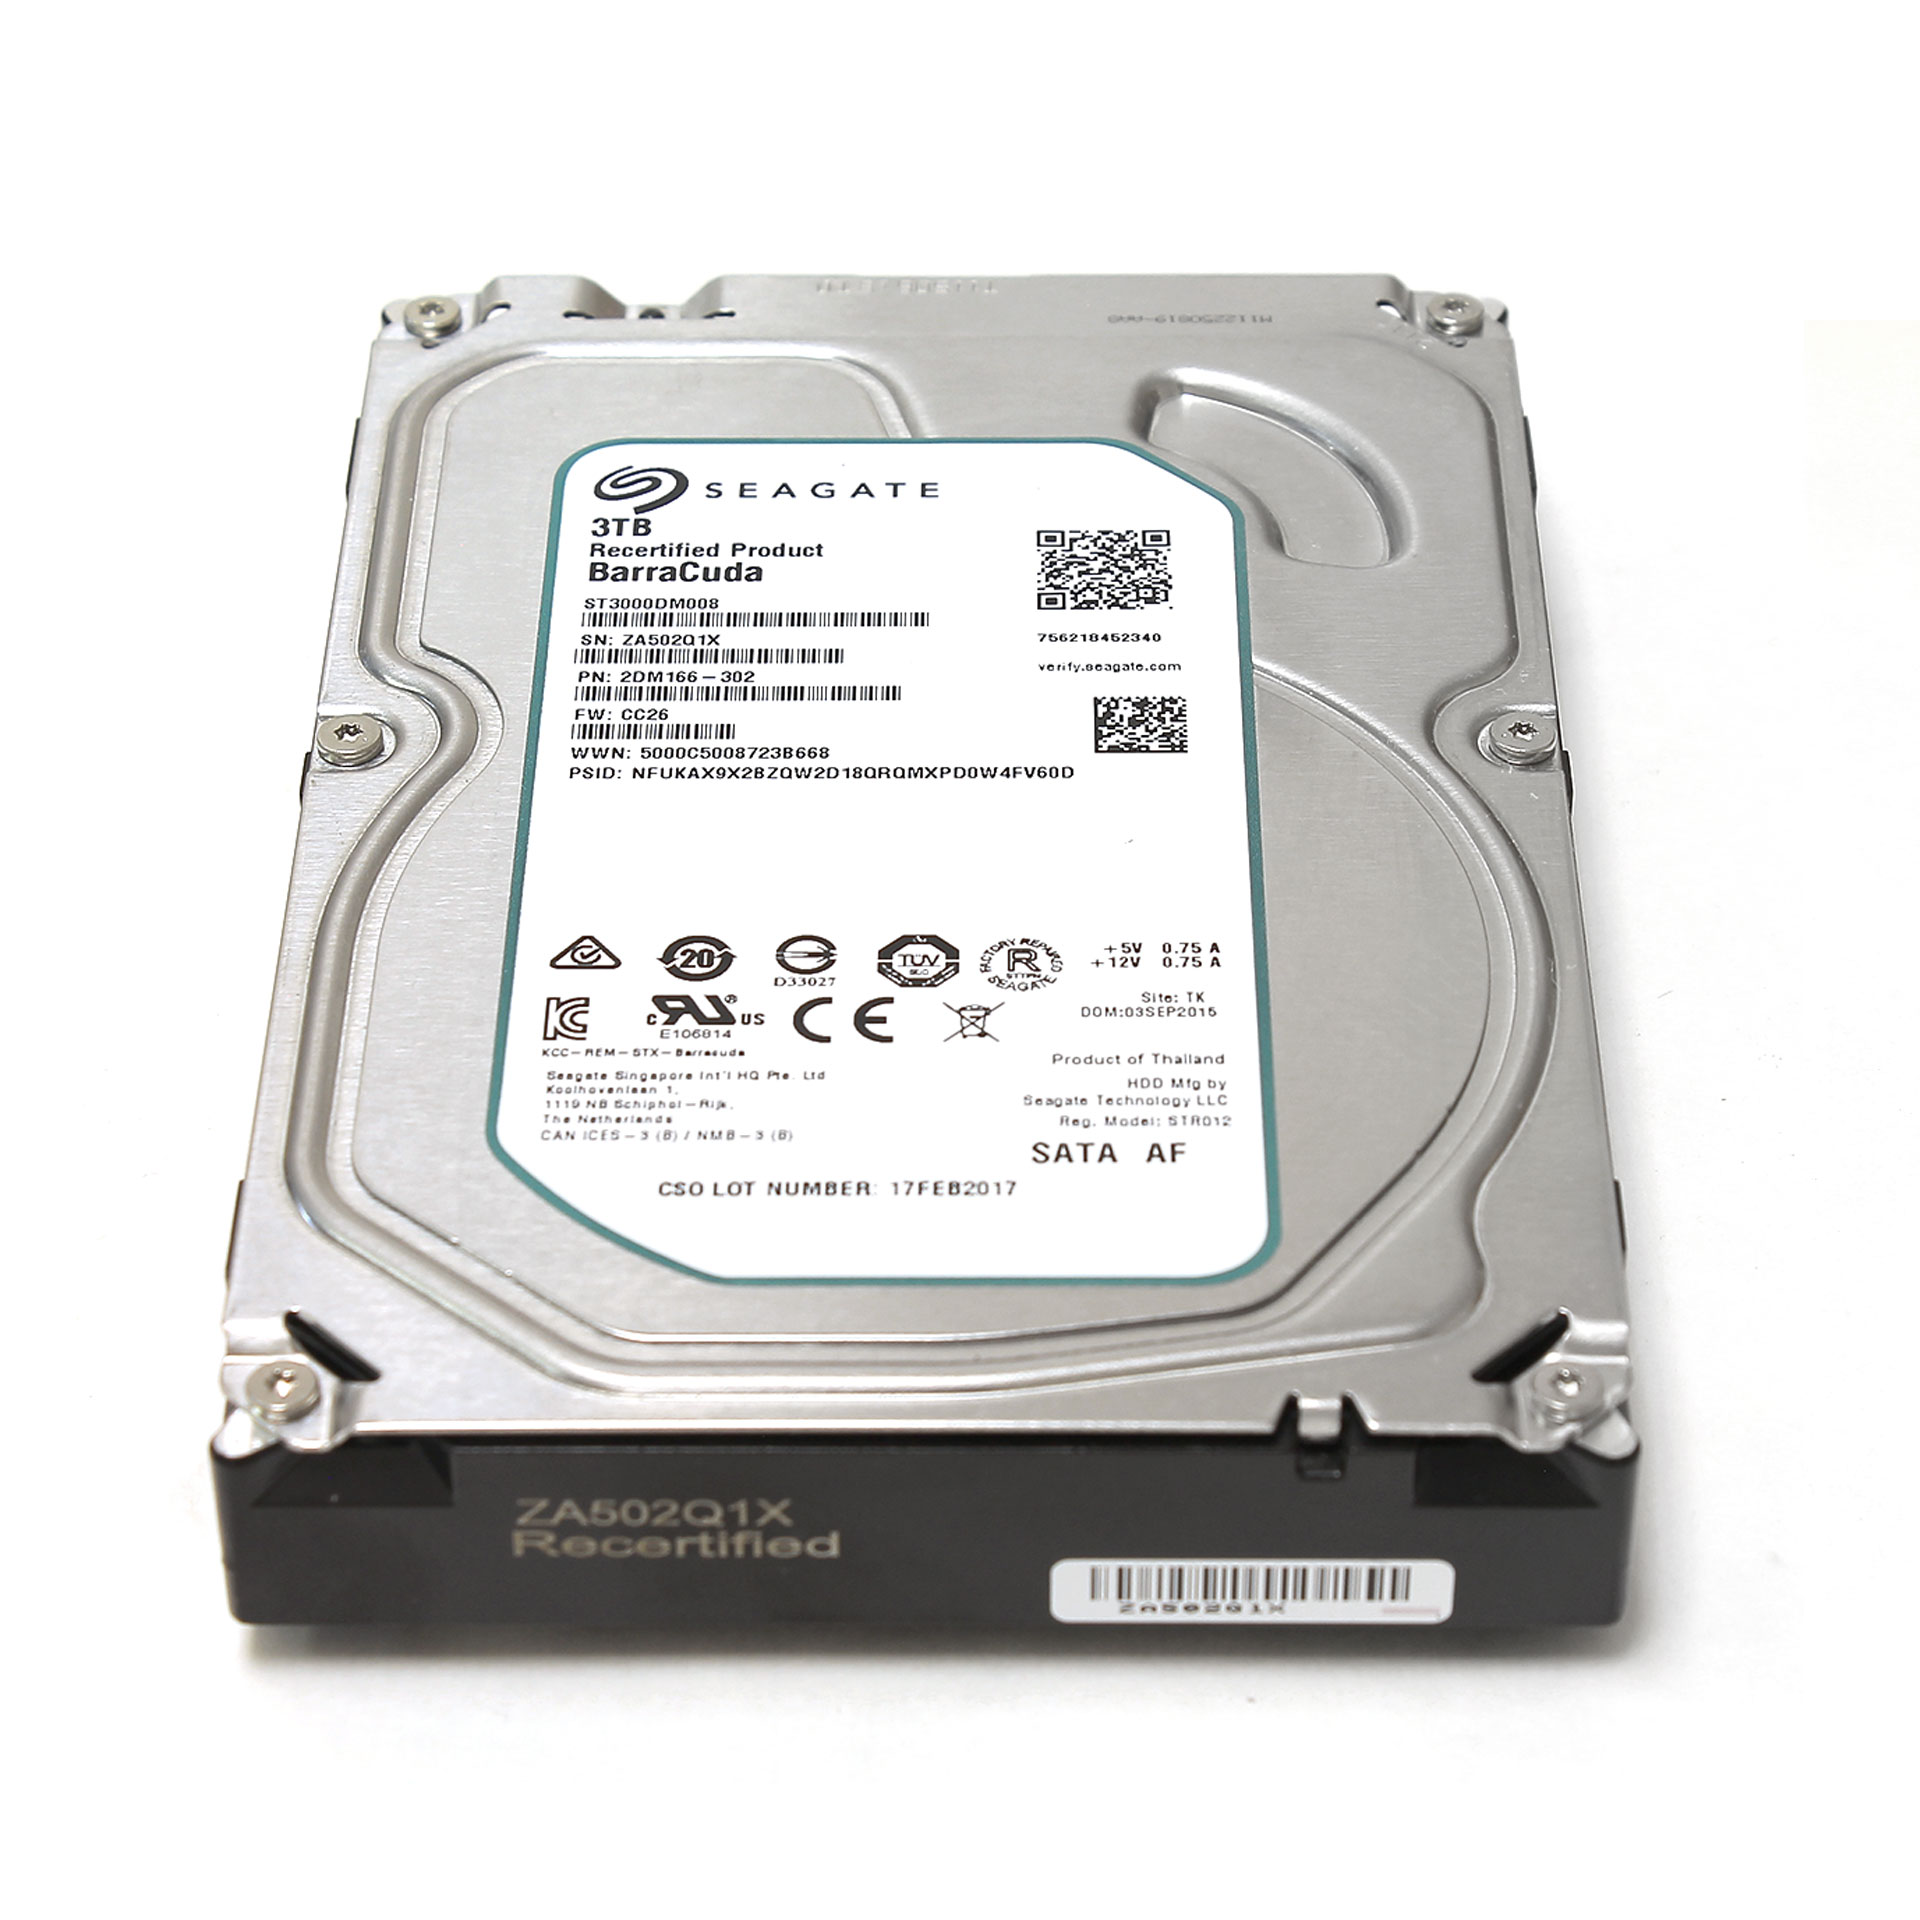 "Seagate BarraCuda 3TB ST3000DM008 64MB SATA 3.5"" 2DM166-302"